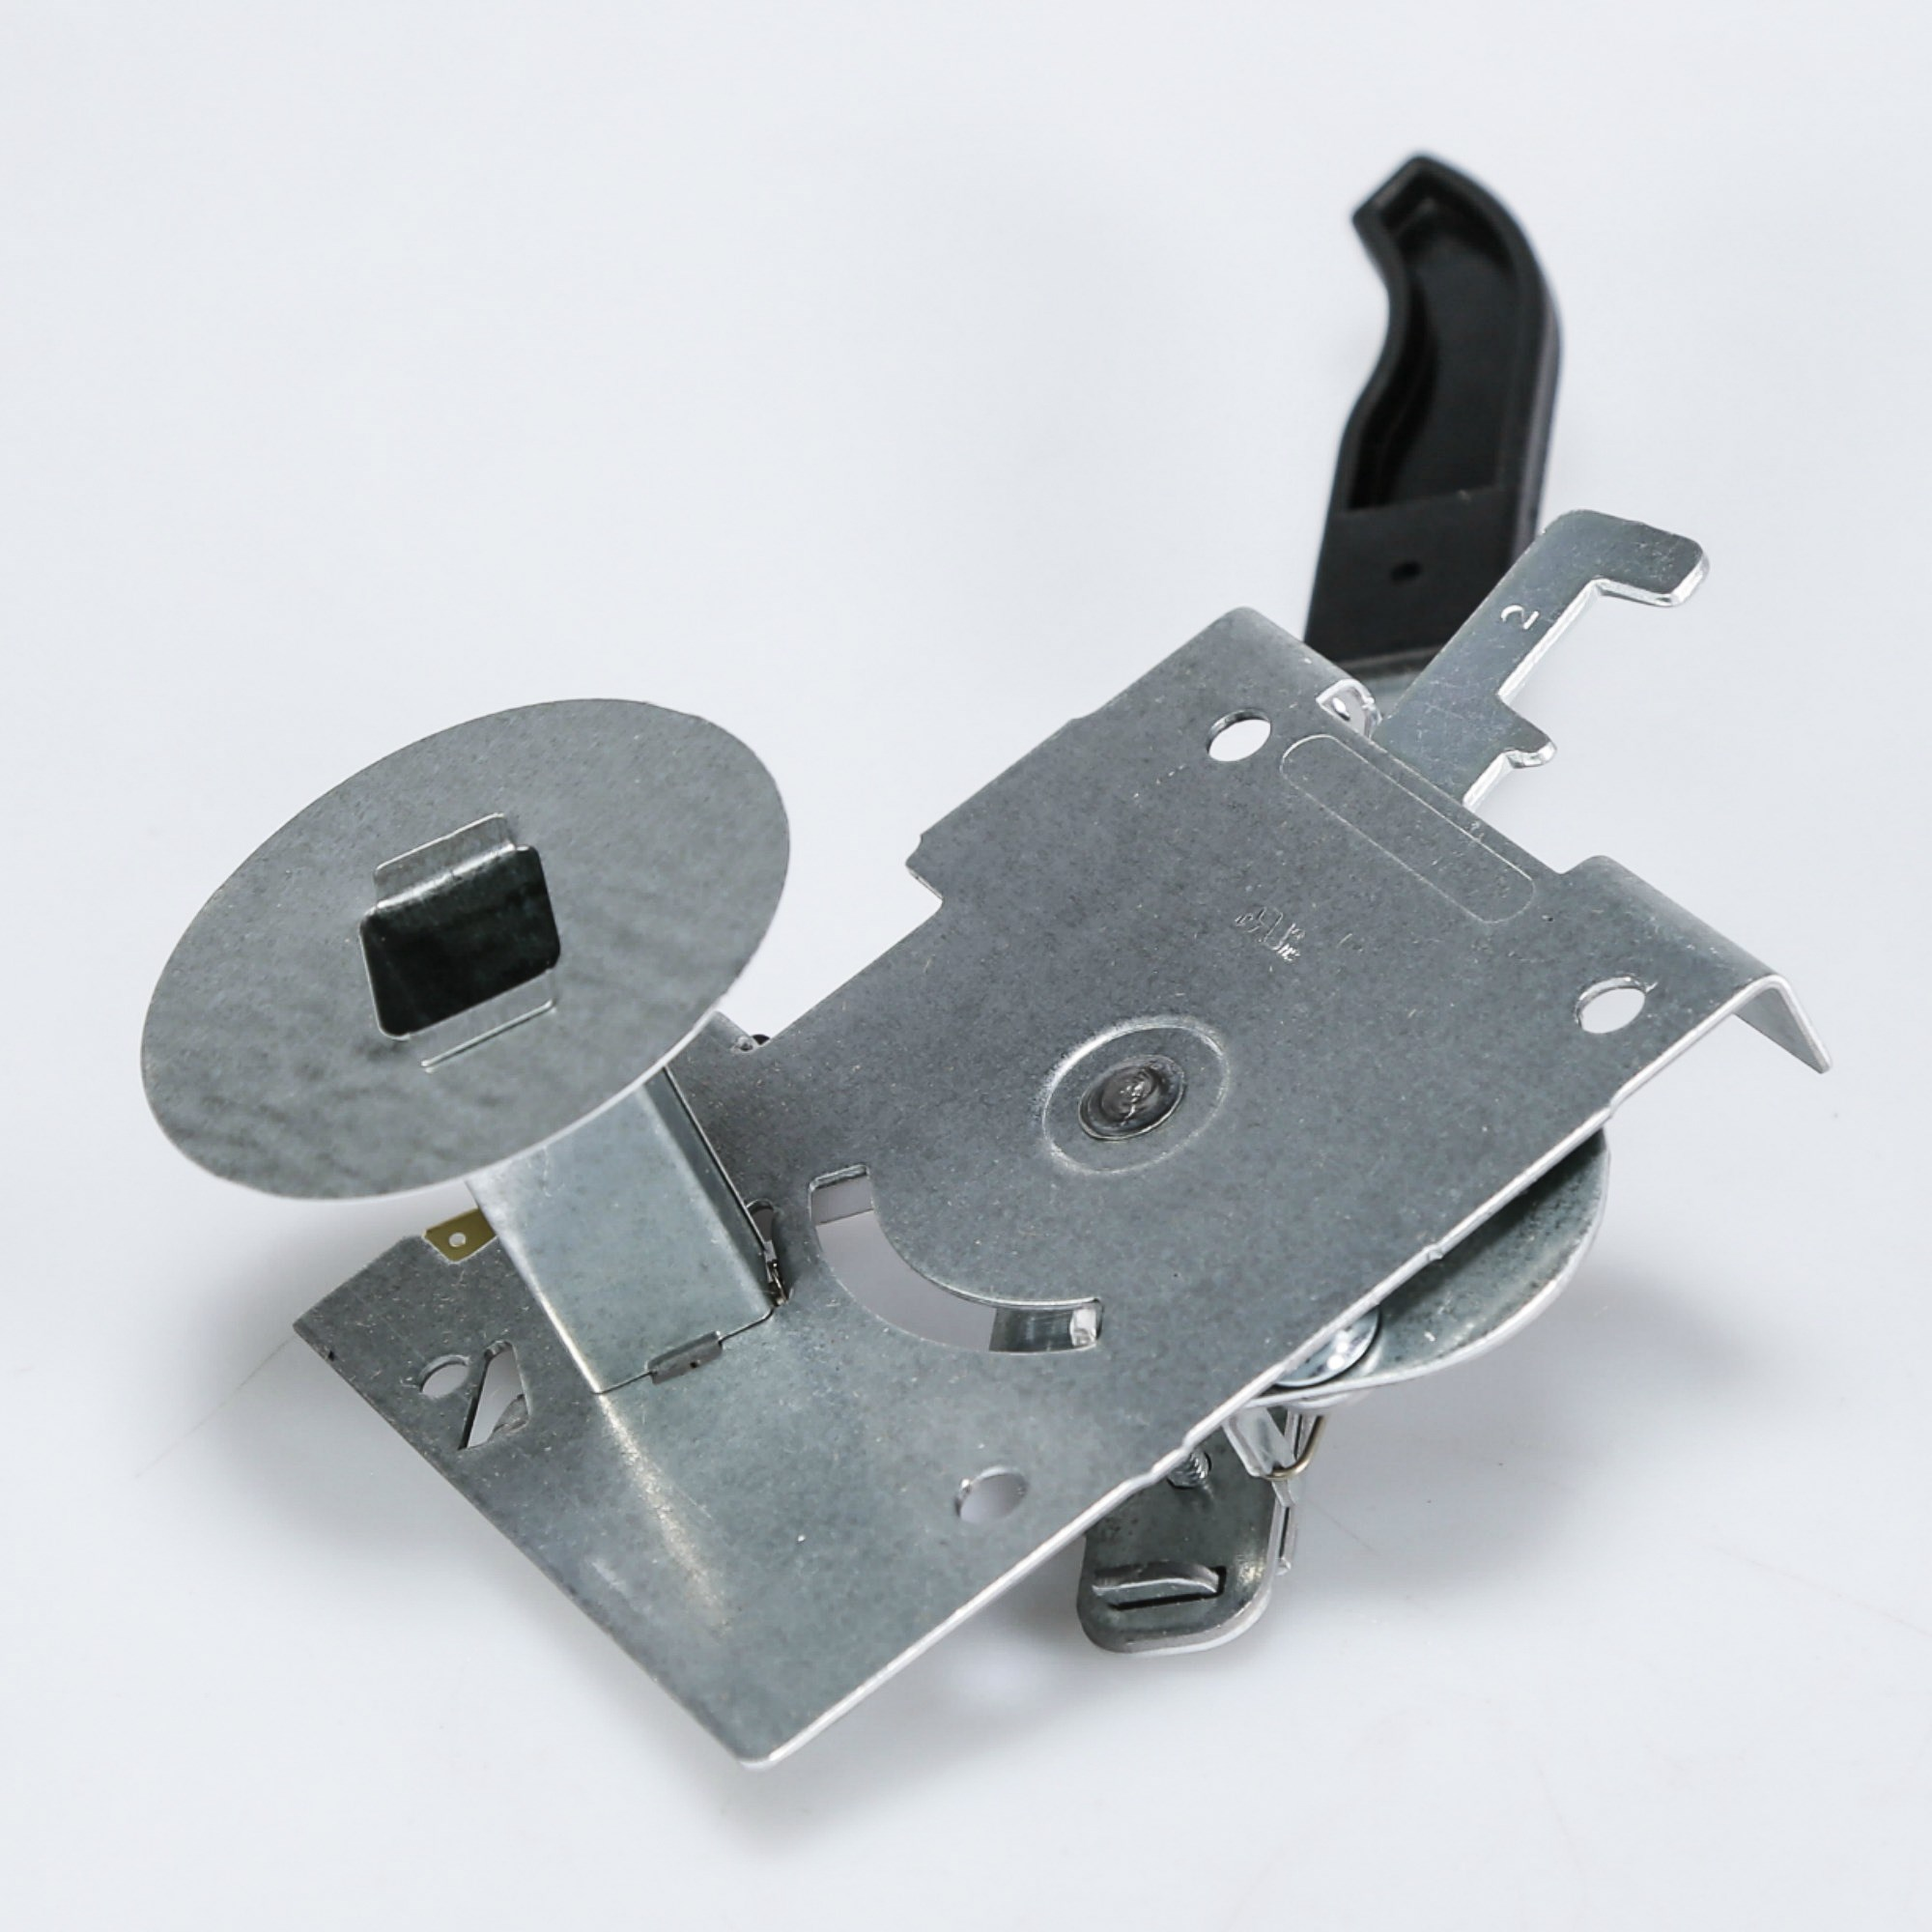 WB14T10092 For GE Range Oven Door Latch and Handle